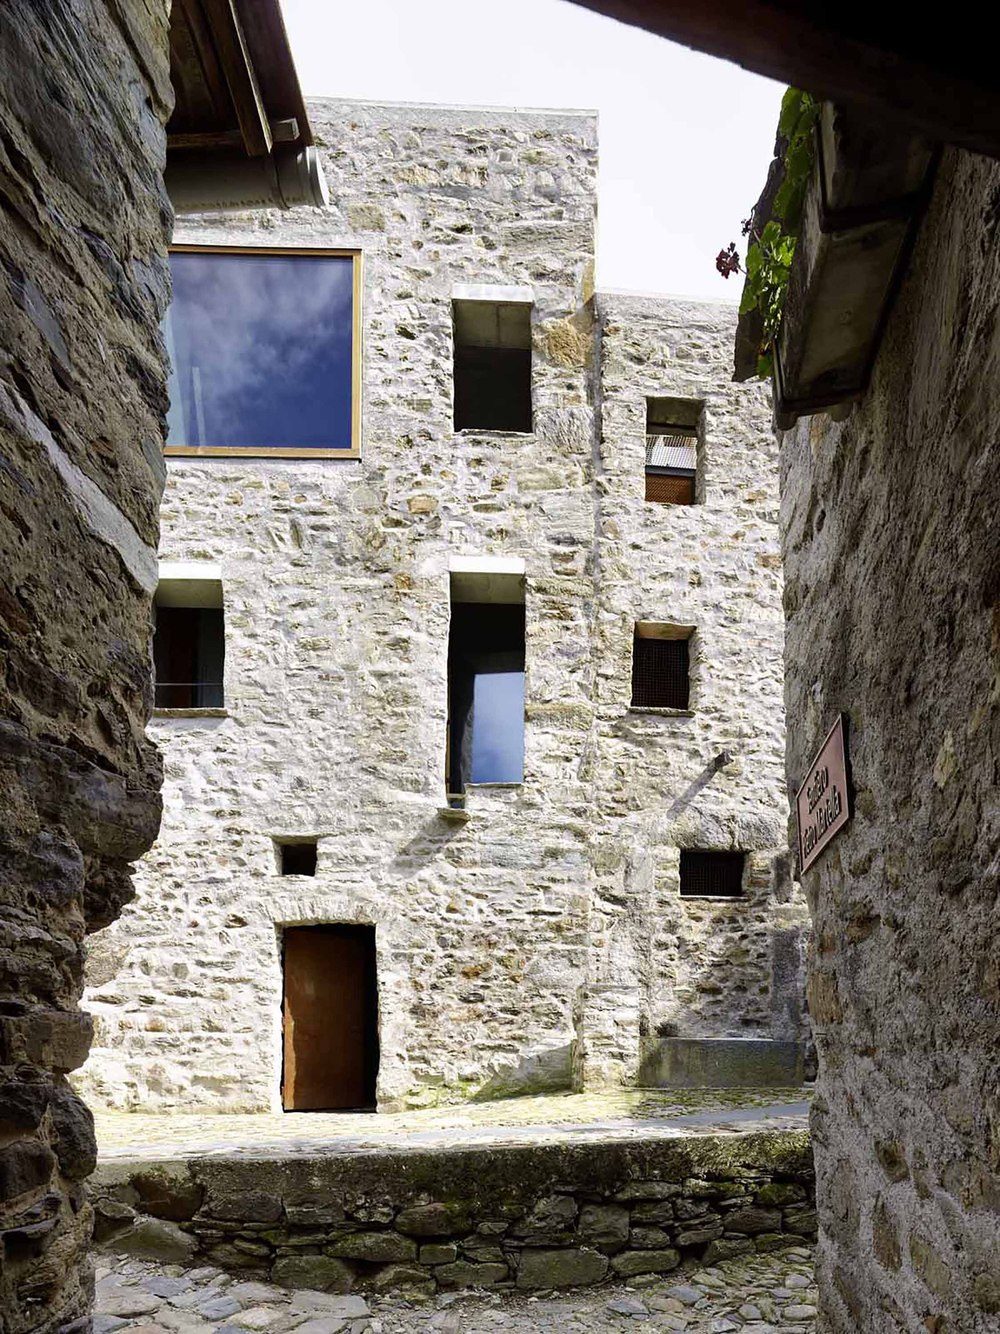 543dd67ec07a802a6900025d_stone-house-transformation-in-scaiano-wespi-de-meuron-romeo-architects_1430_cf031704.jpg